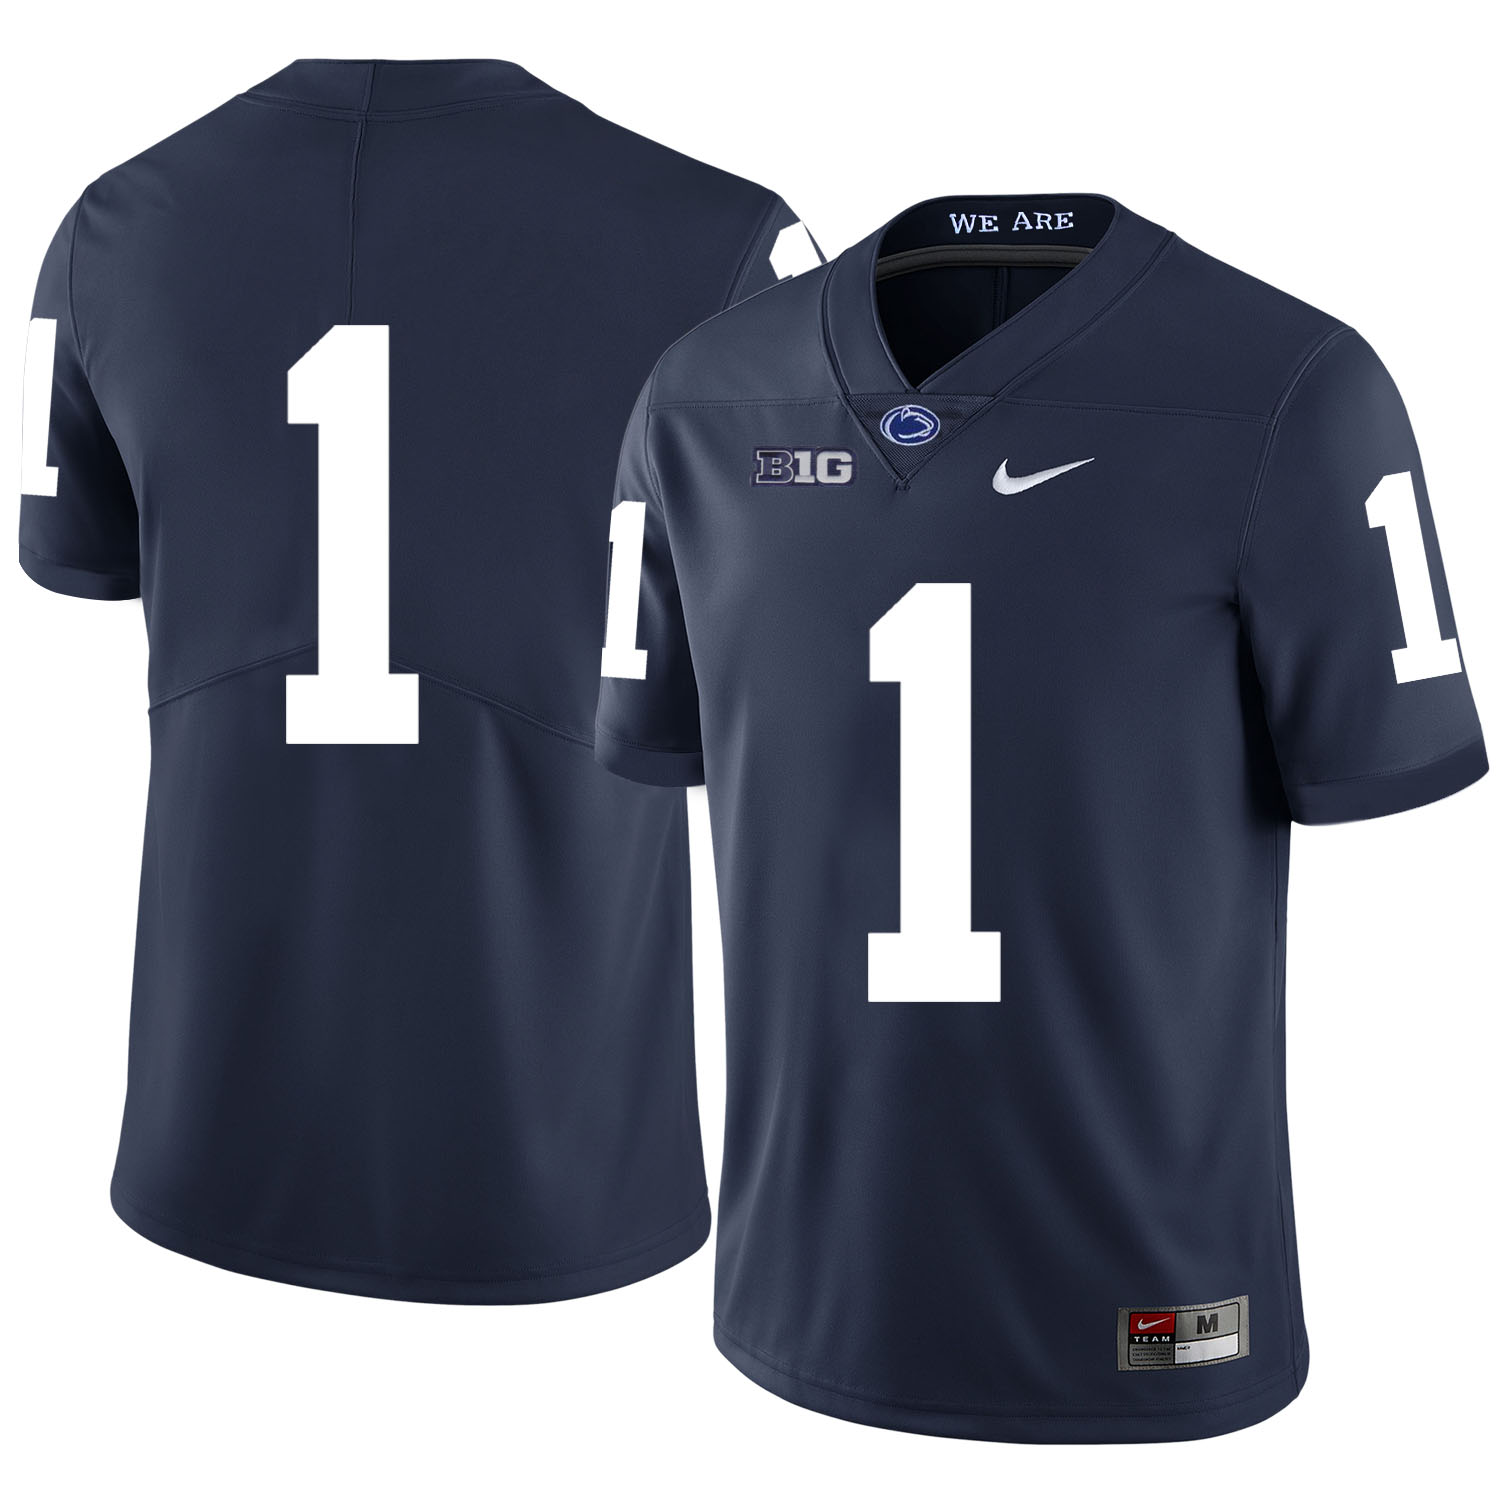 Penn State Nittany Lions 1 Christian Campbell Navy Nike College Football Jersey